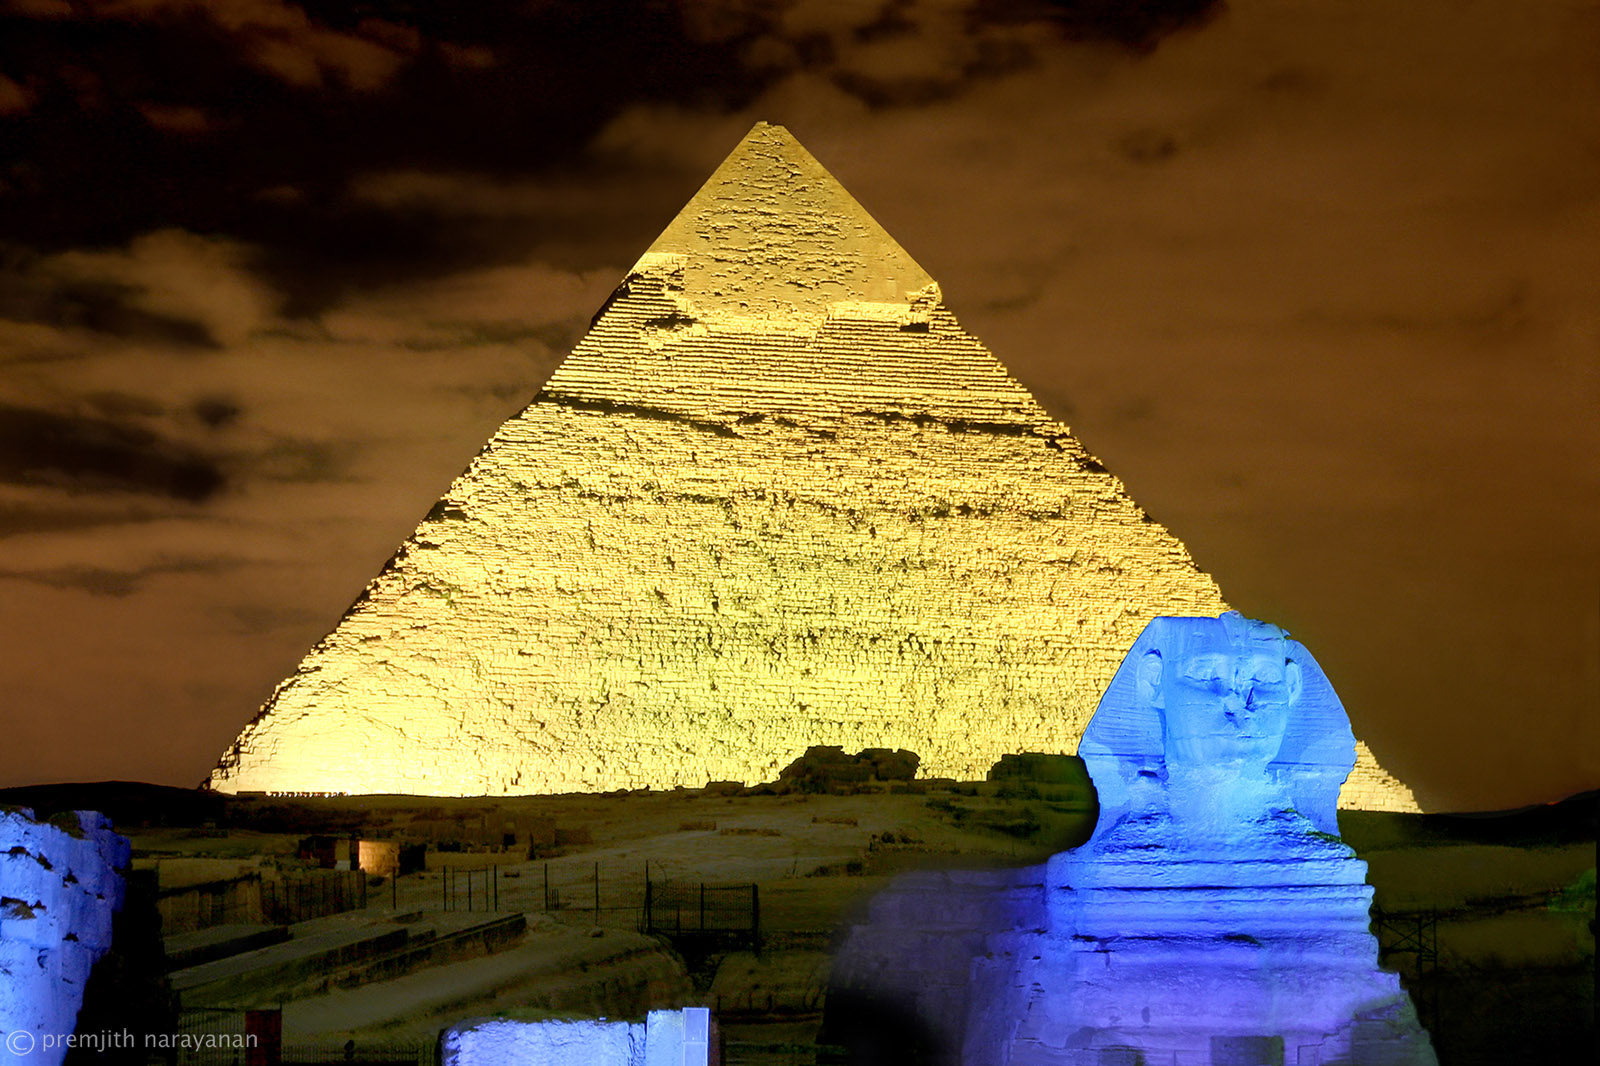 Sphynx and the Pyramid